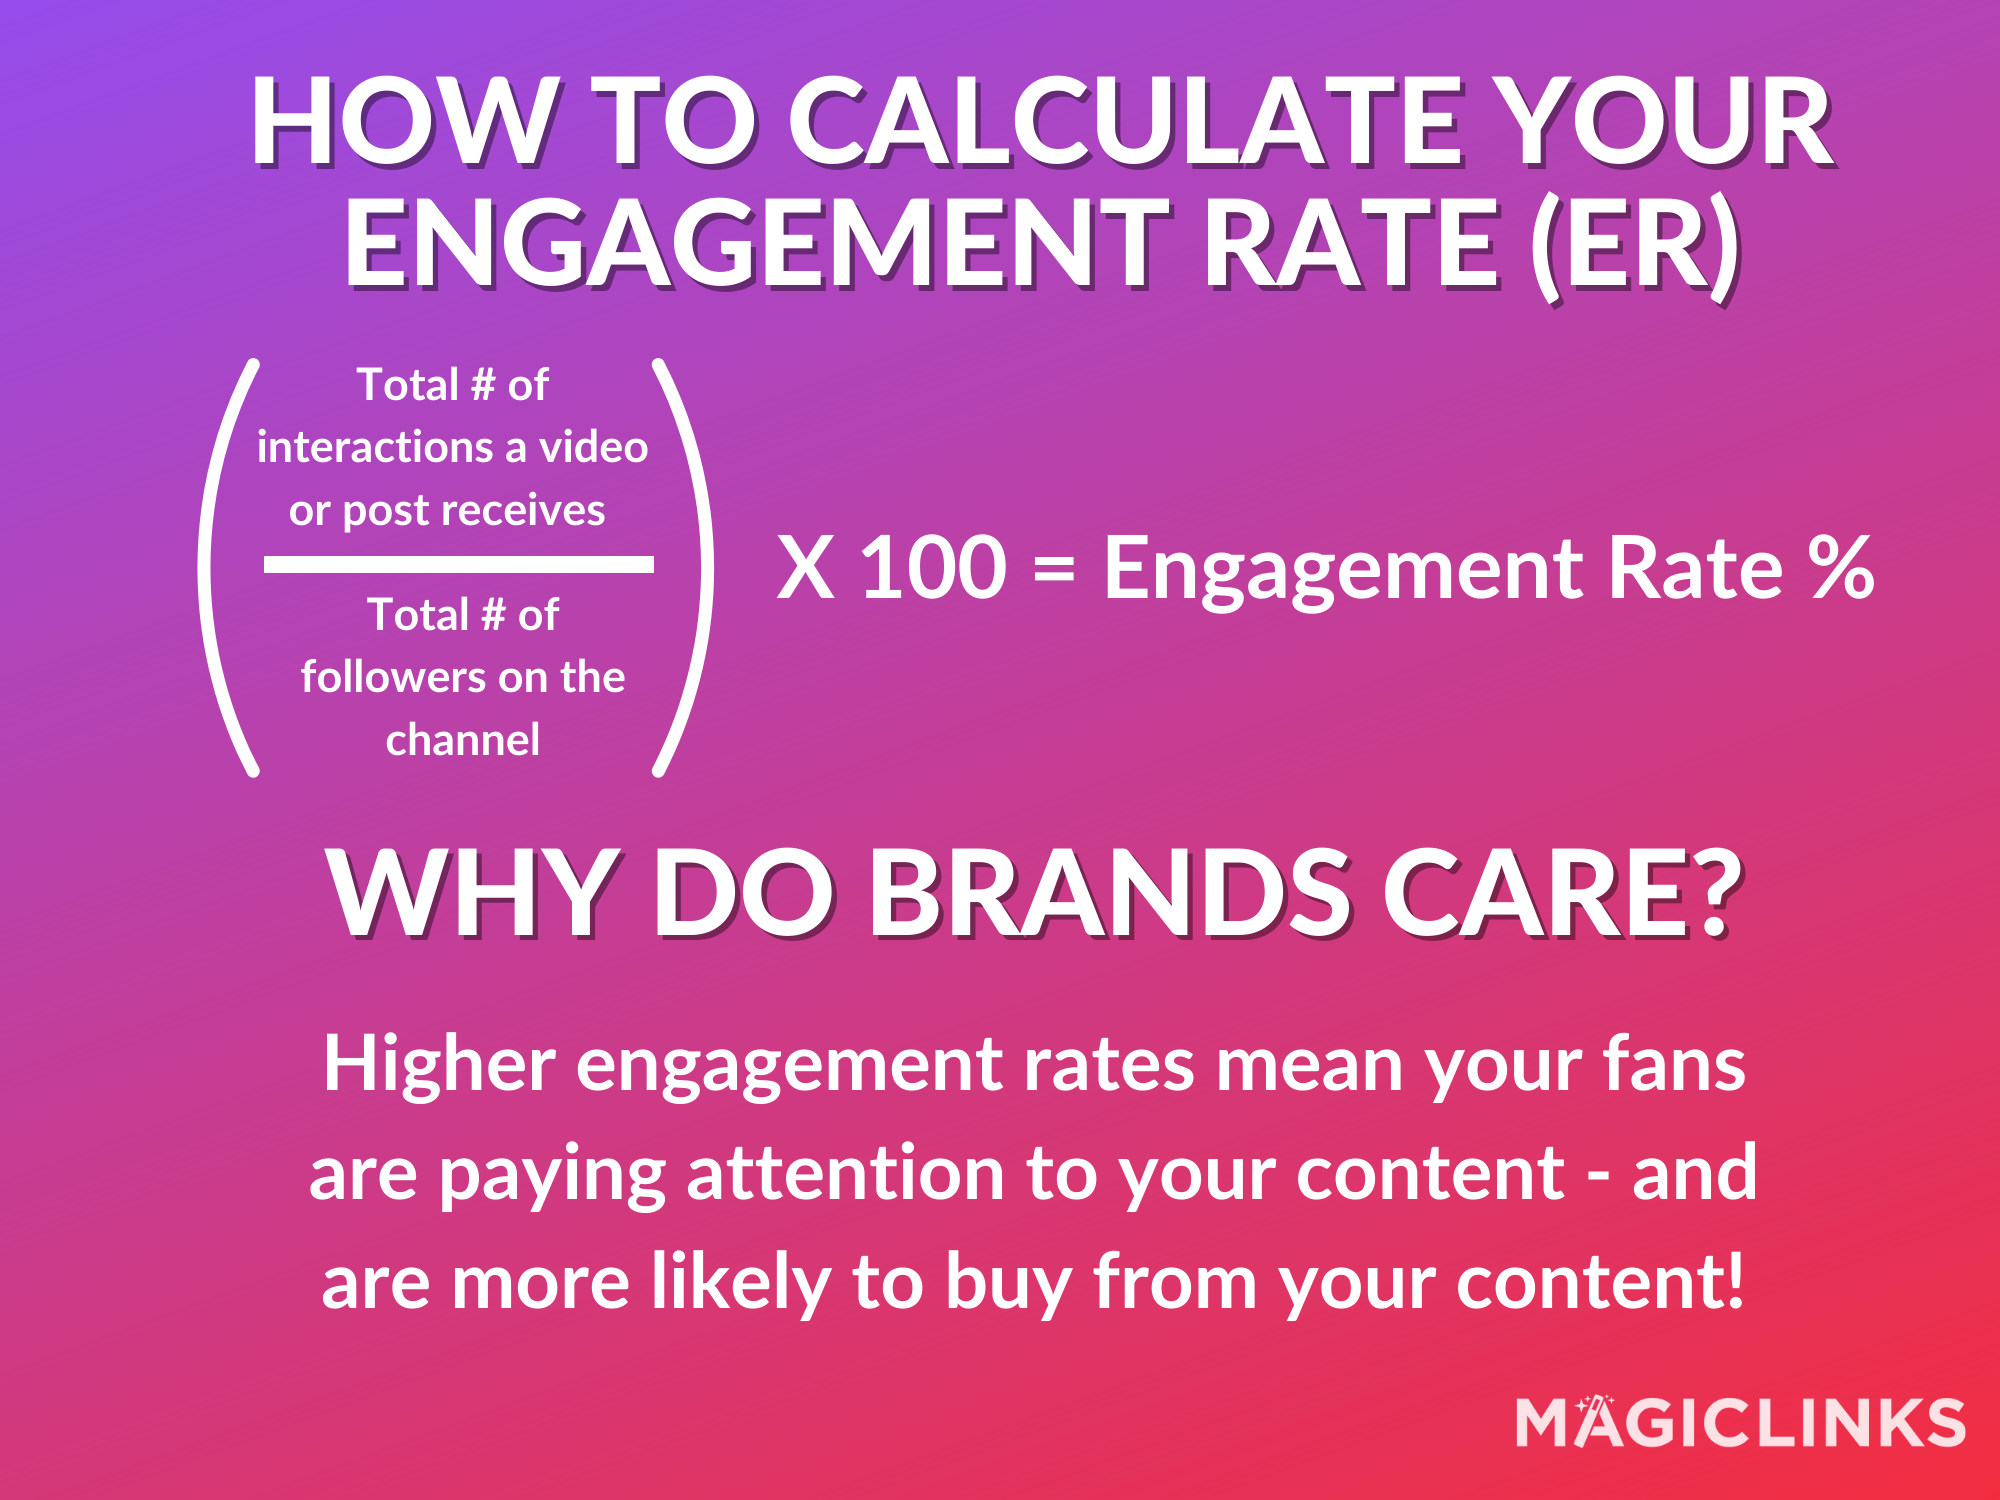 How to calculate your engagement rate: Divide the total # of interactions a post recieves [likes, comments, shares, views] by the number of followers on the channel. Multiply the result by 100 to get your engagement rate, expressed as a percentage.   Why do brands care? Higher engagement rates mean your fans are paying attention to your content - and are more likely to buy from your content!